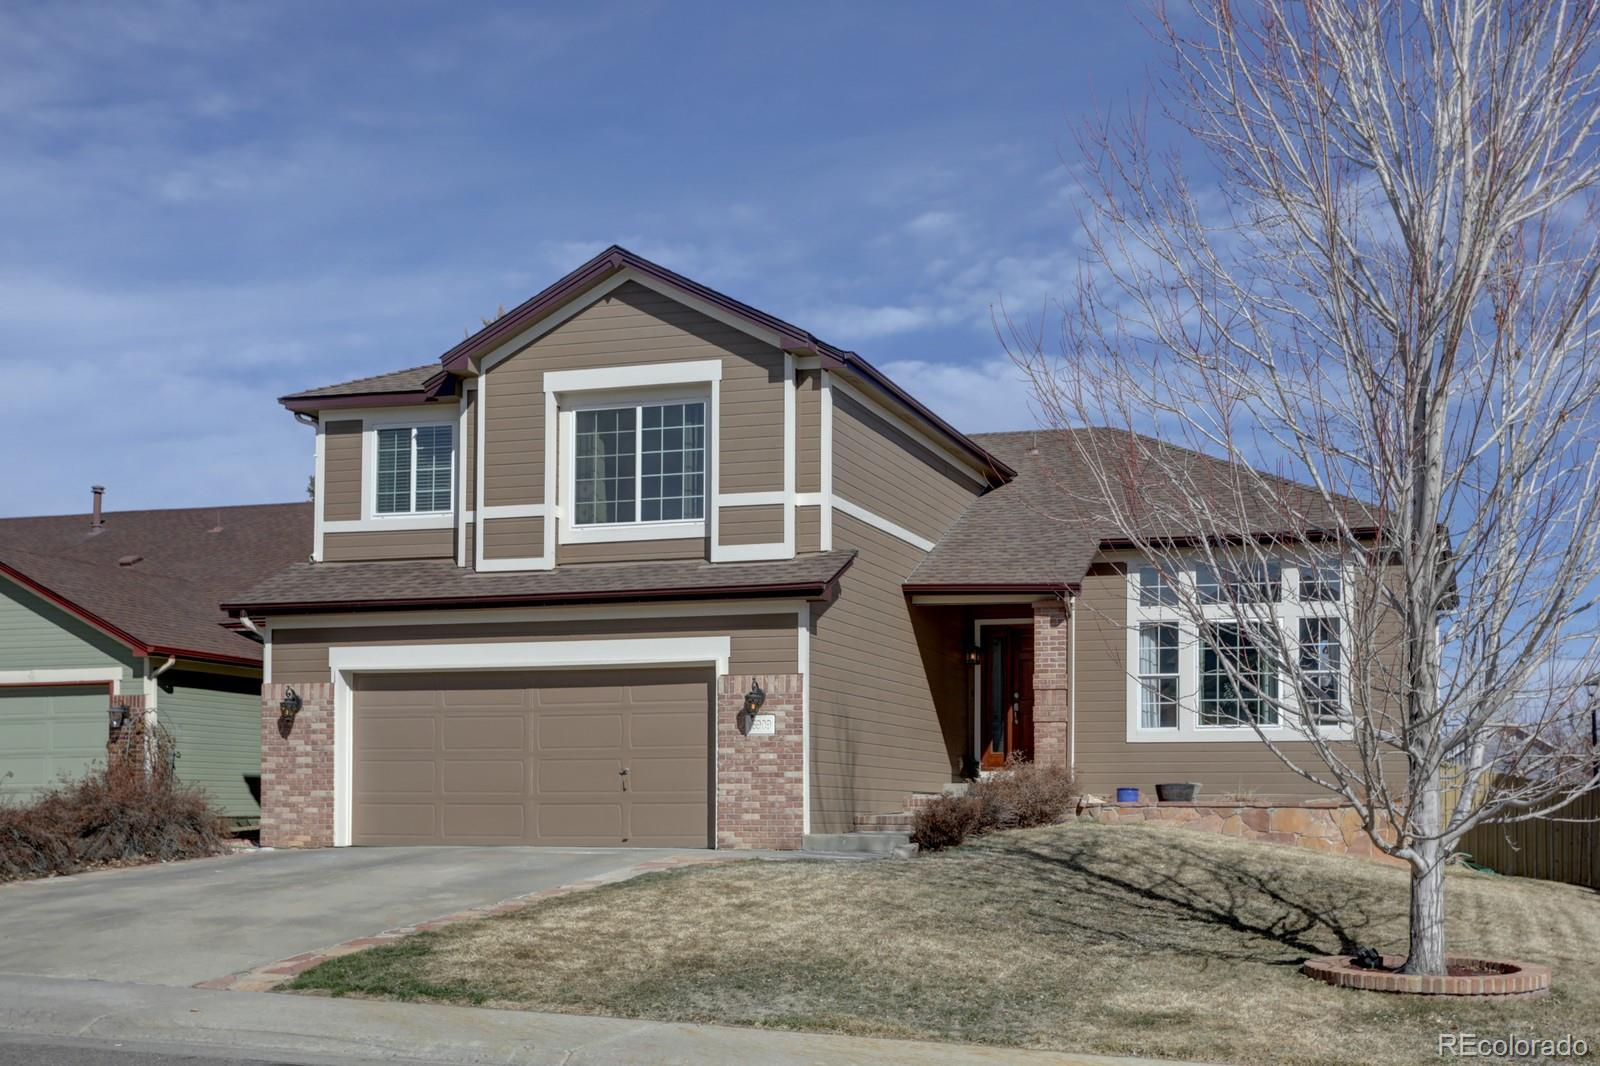 MLS# 8424791 - 3 - 16909 Molina Place, Parker, CO 80134